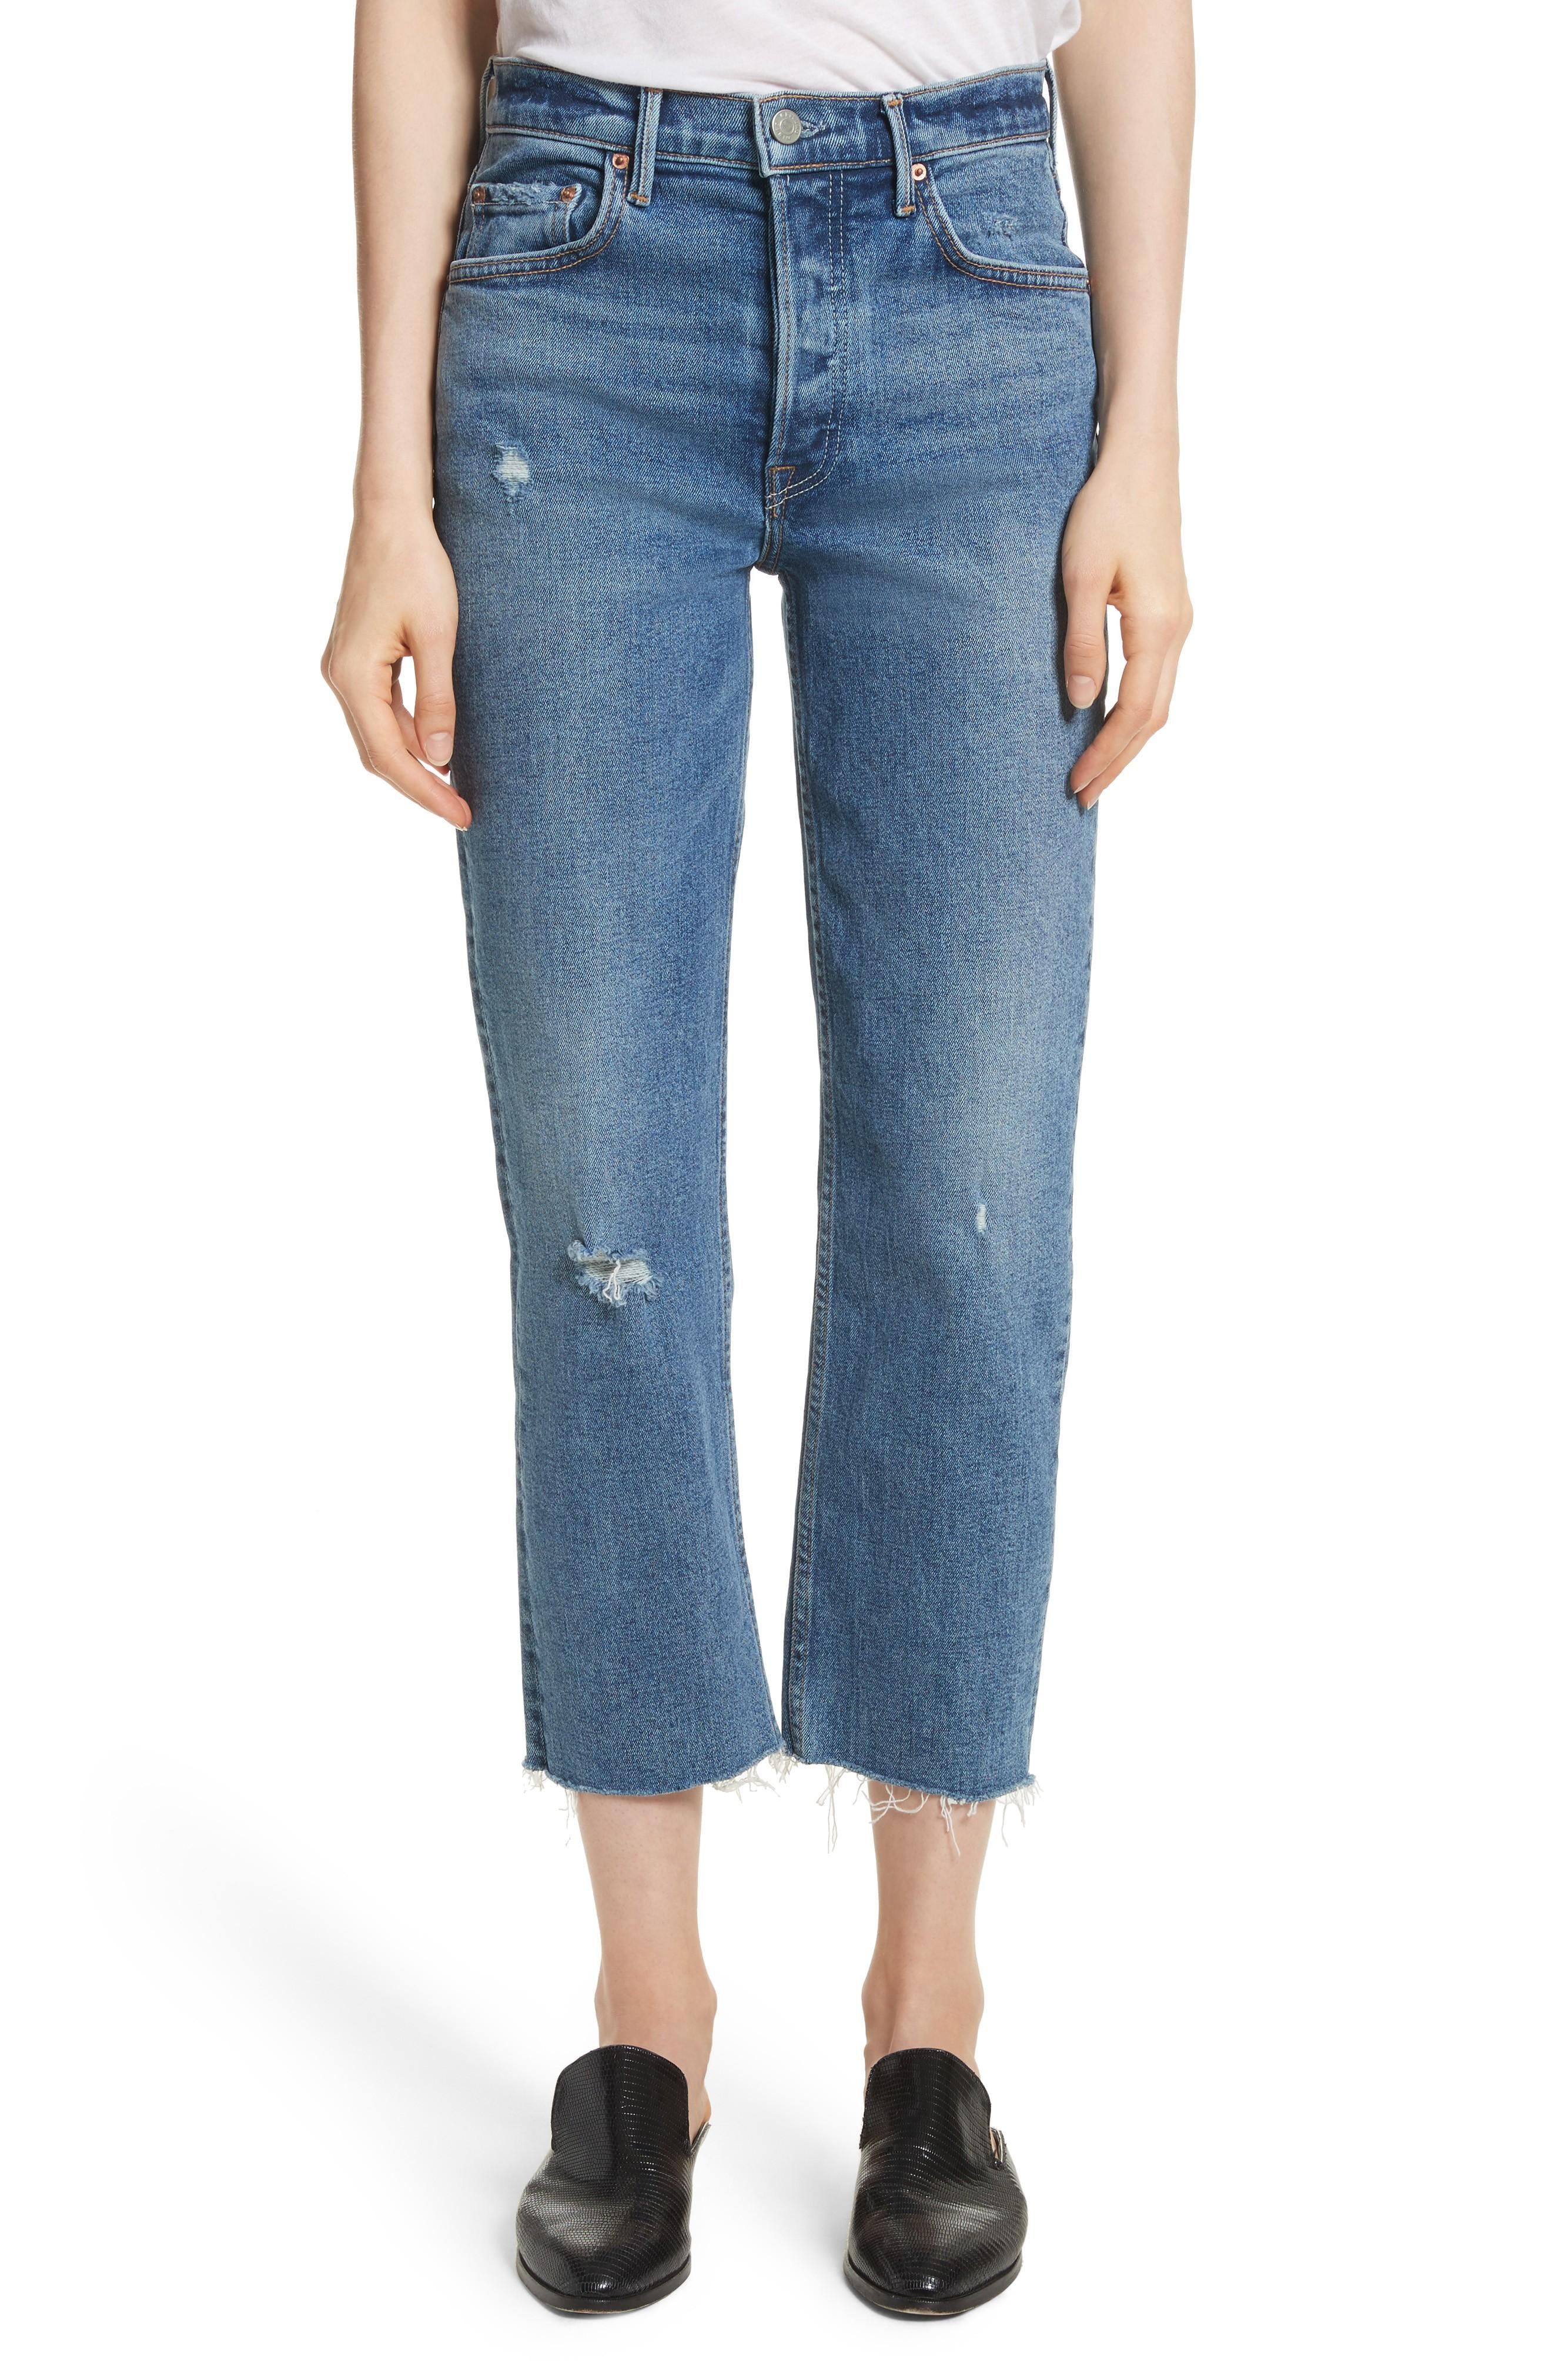 Grlfrnd Helena Distressed Rigid High Waist Straight Jeans In Sixpence